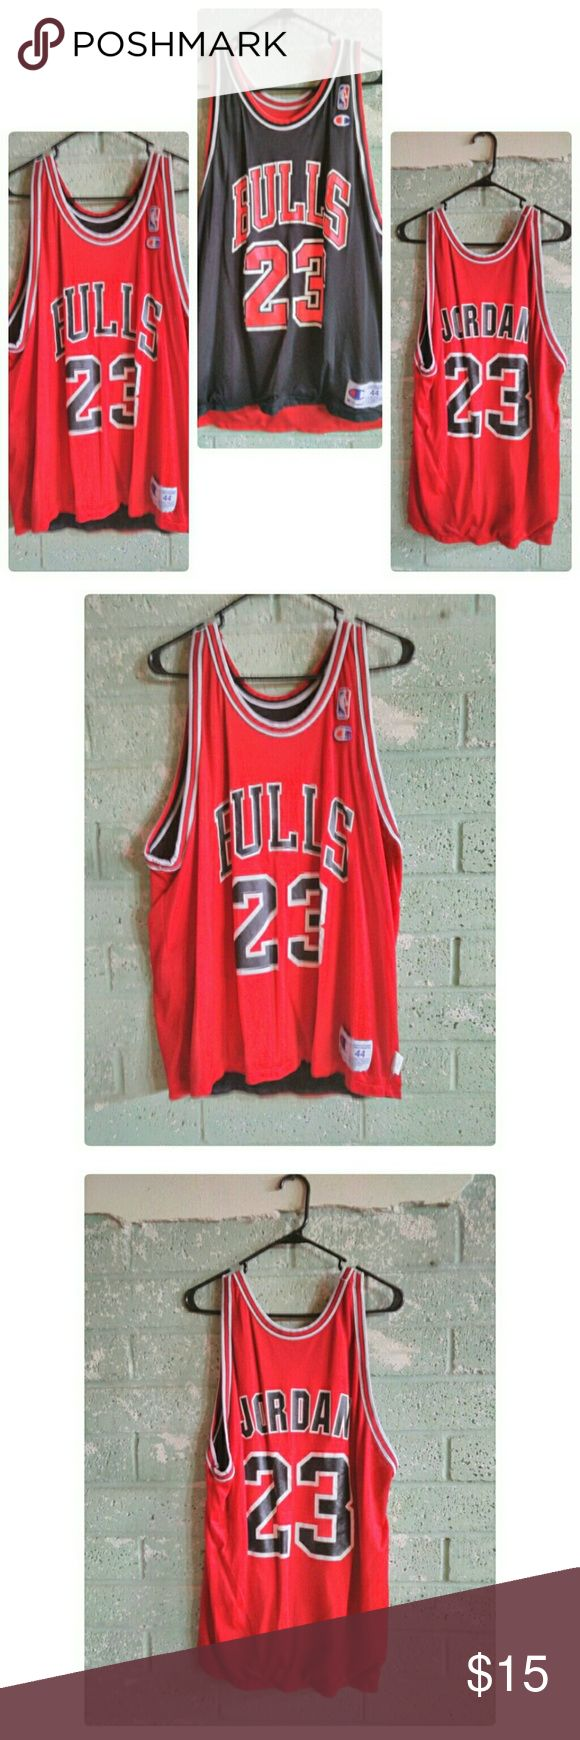 Men's NBA Chicago Bulls Michael Jordan jersey Used in good condition reverseable Chicago Bulls Michael Jordan jersey Champion Shirts